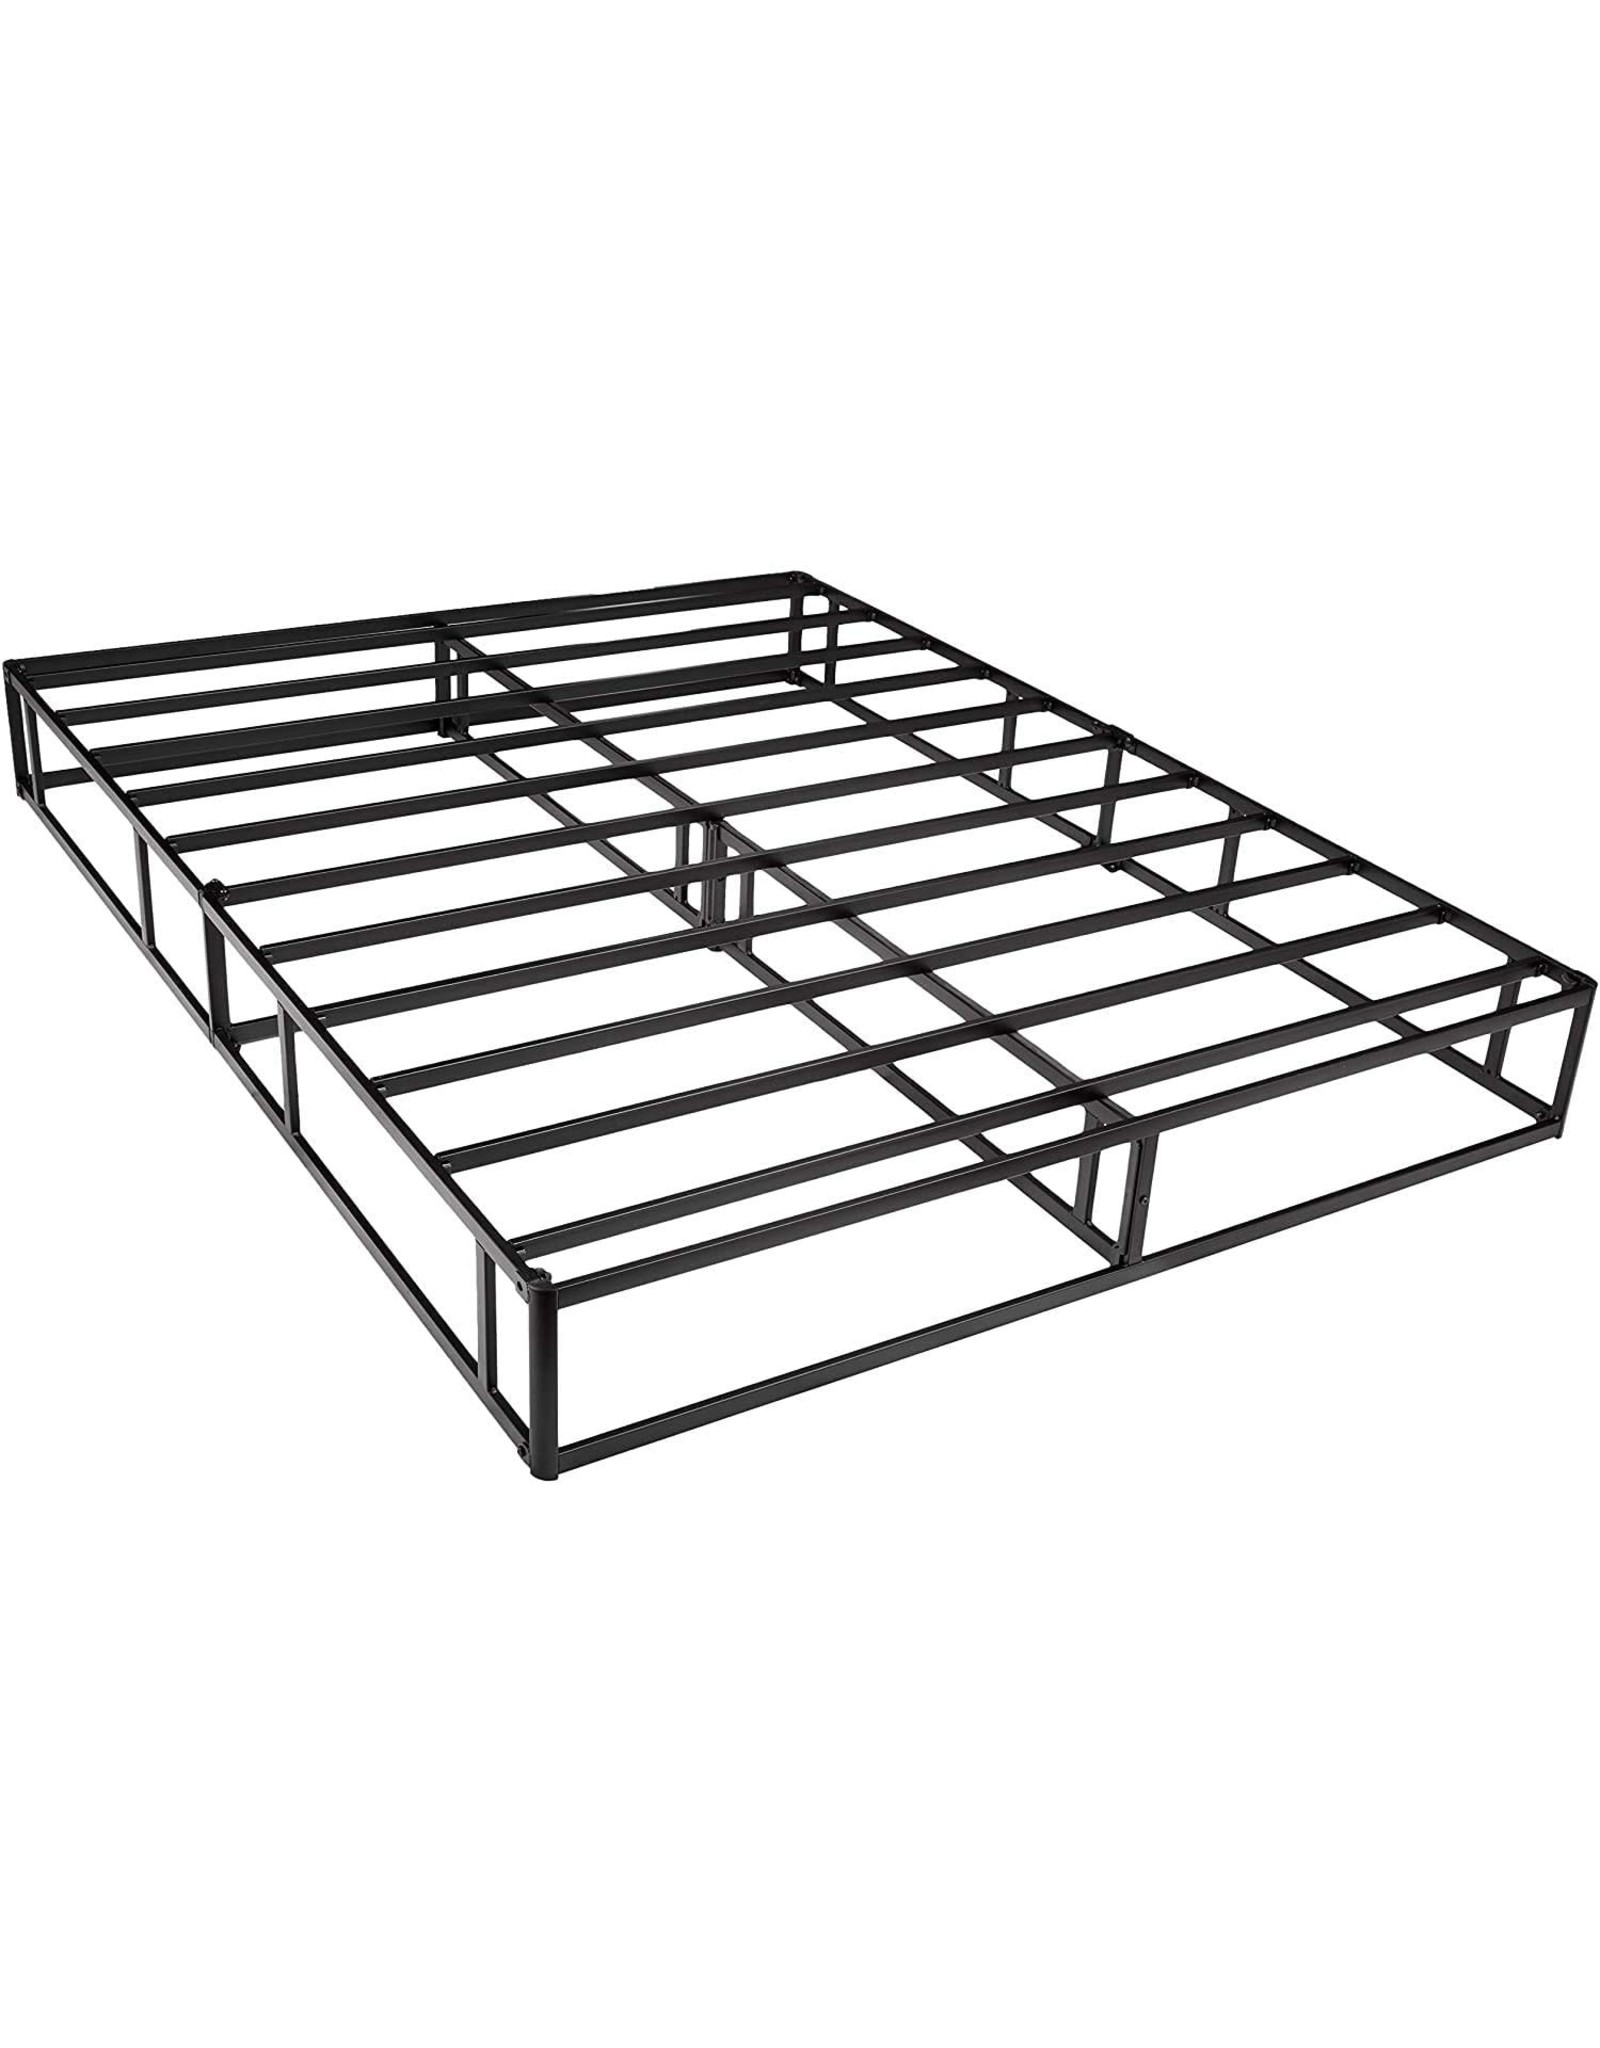 Amazon Basics Mattress Foundation / Smart Box Spring for King Size Bed, Tool-Free Easy Assembly - 9-Inch, King